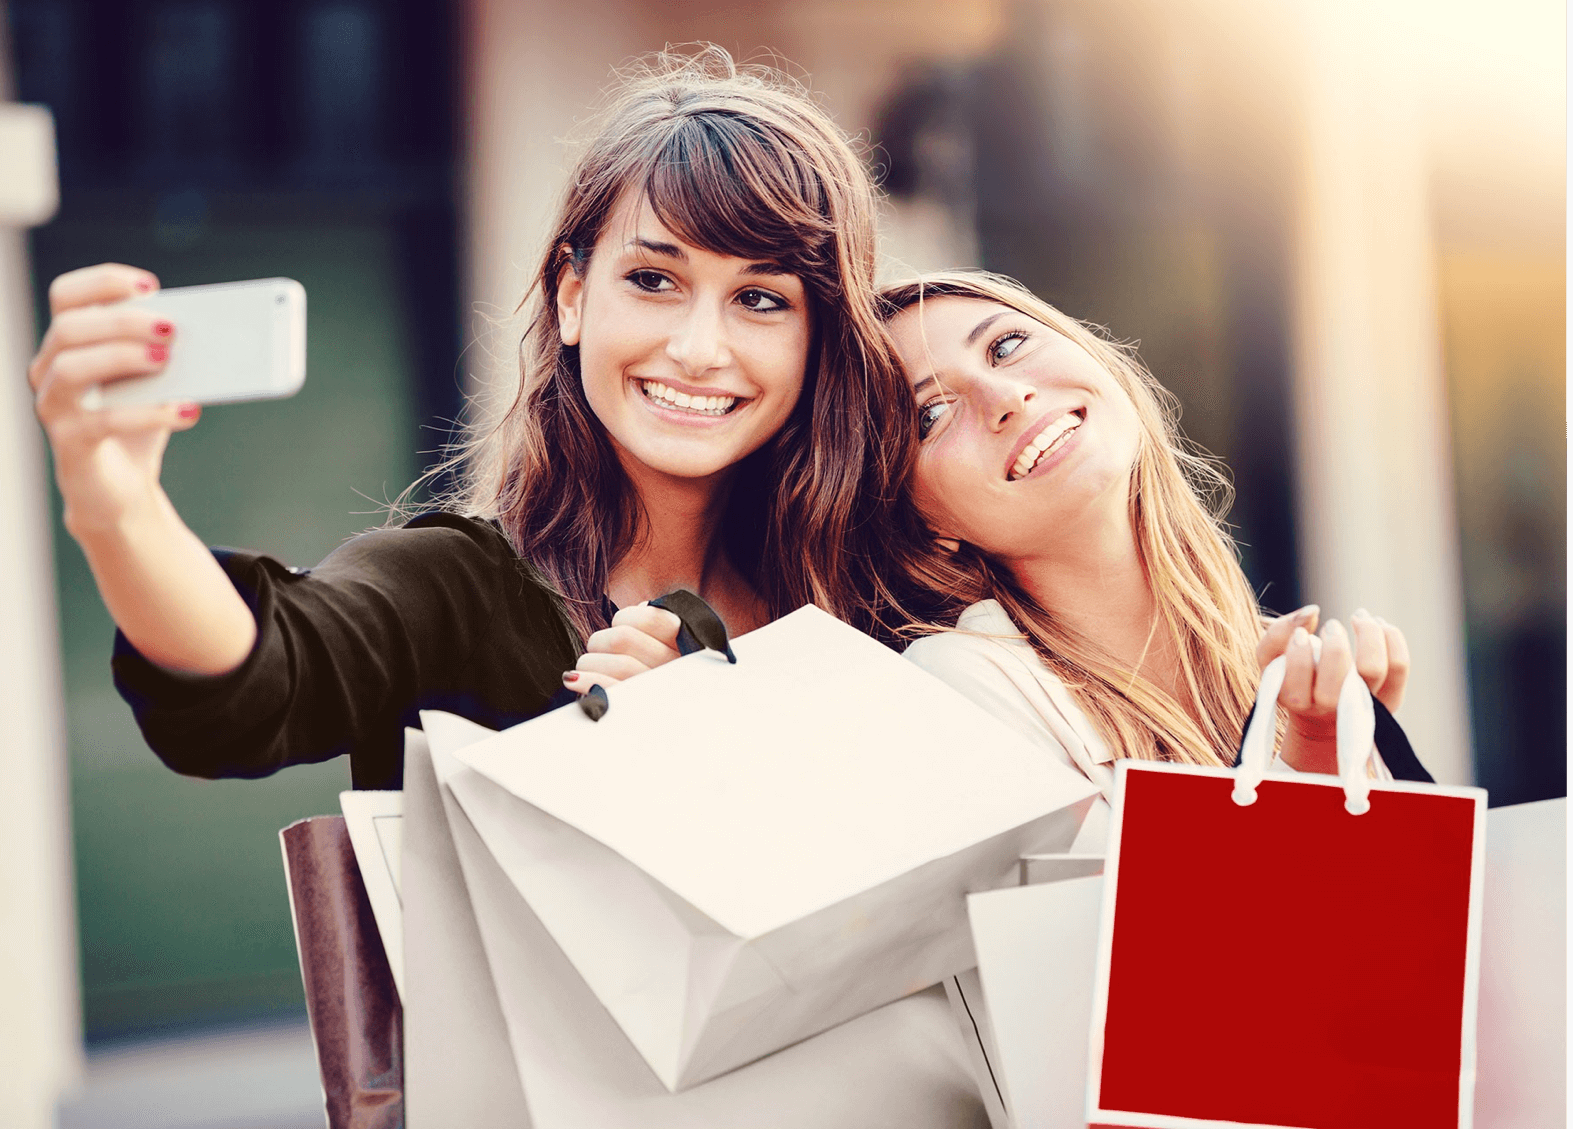 two girls taking a selfie with shopping bags